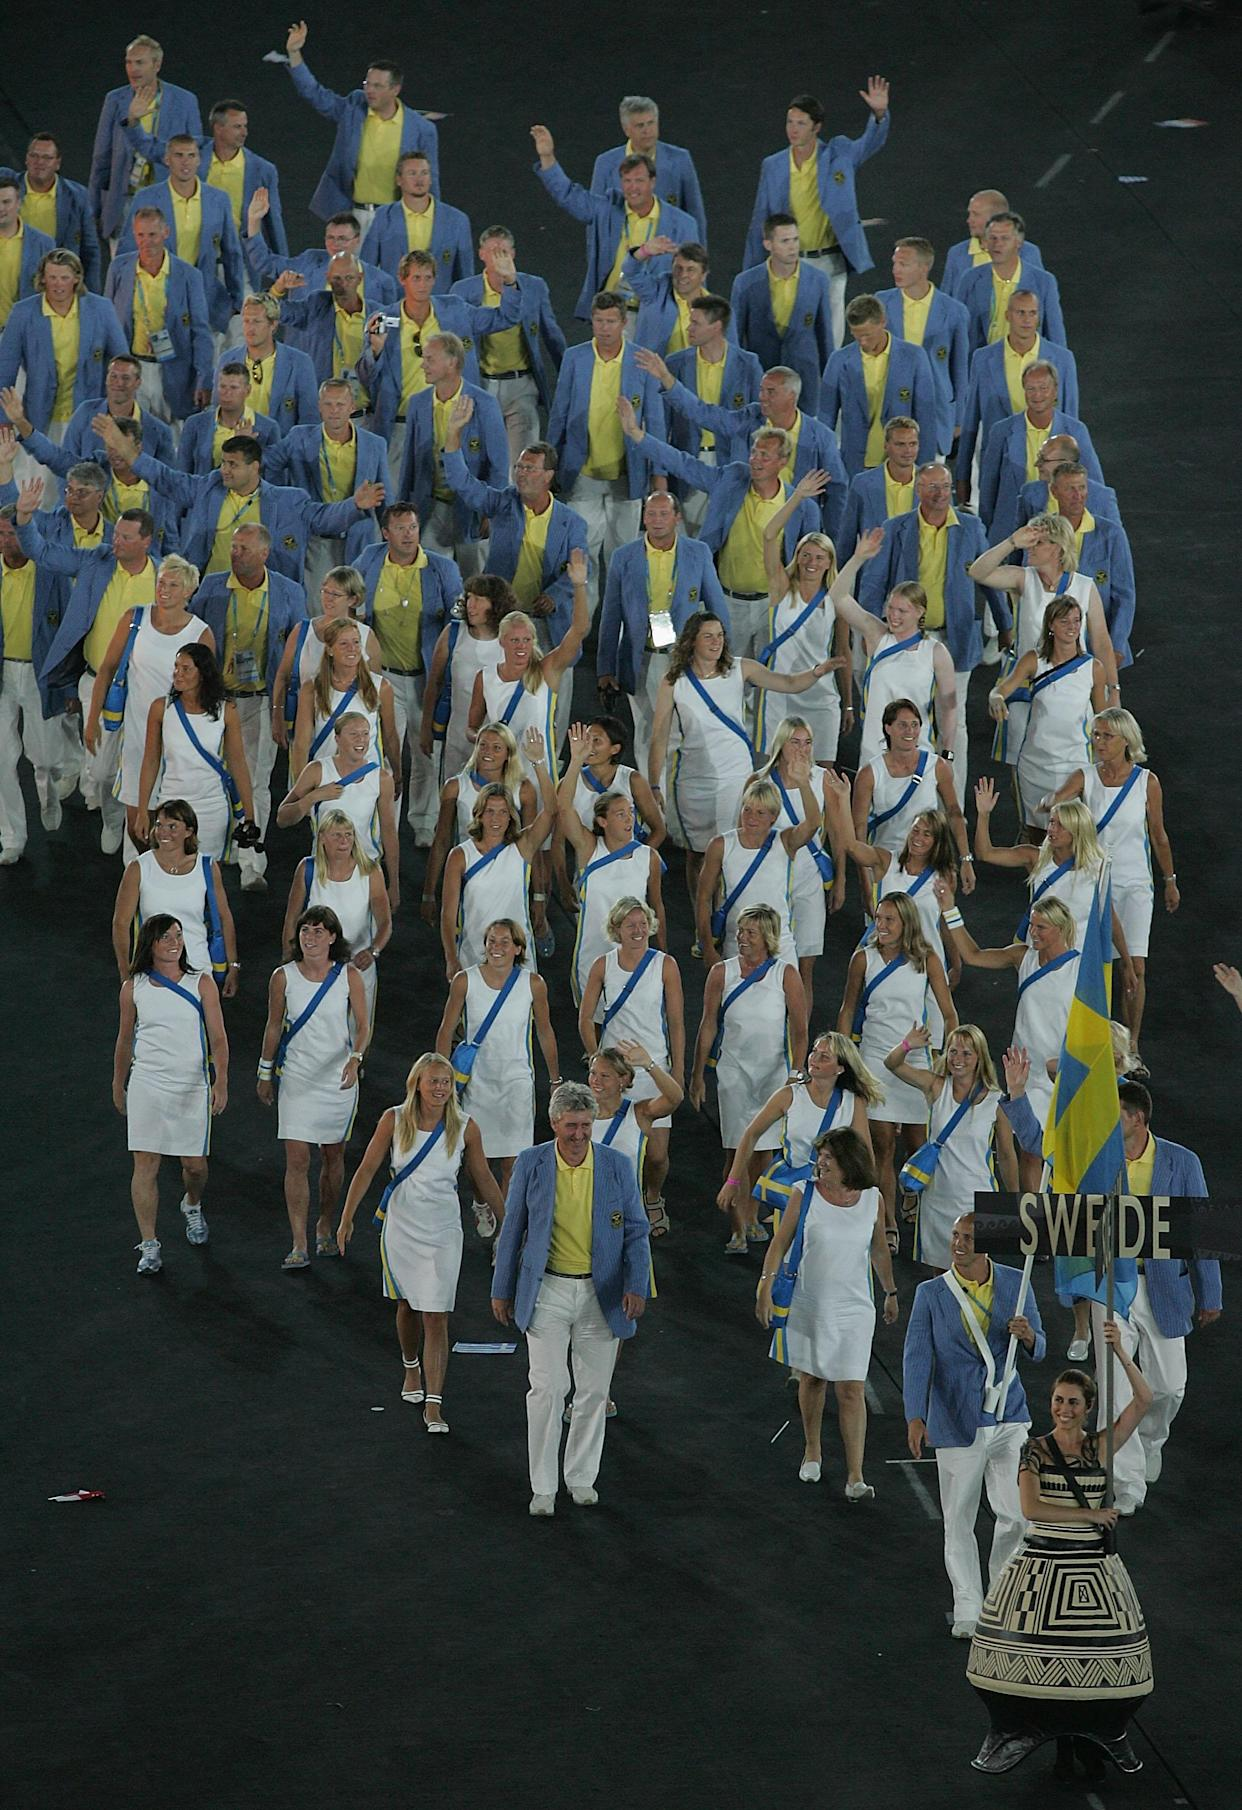 ATHENS - AUGUST 13:  Flag bearer Lars Frolander leads team Sweden during the opening ceremony of the Athens 2004 Summer Olympic Games on August 13, 2004 at the Sports Complex Olympic Stadium in Athens, Greece.  (Photo by Jonathan Ferrey/Getty Images)